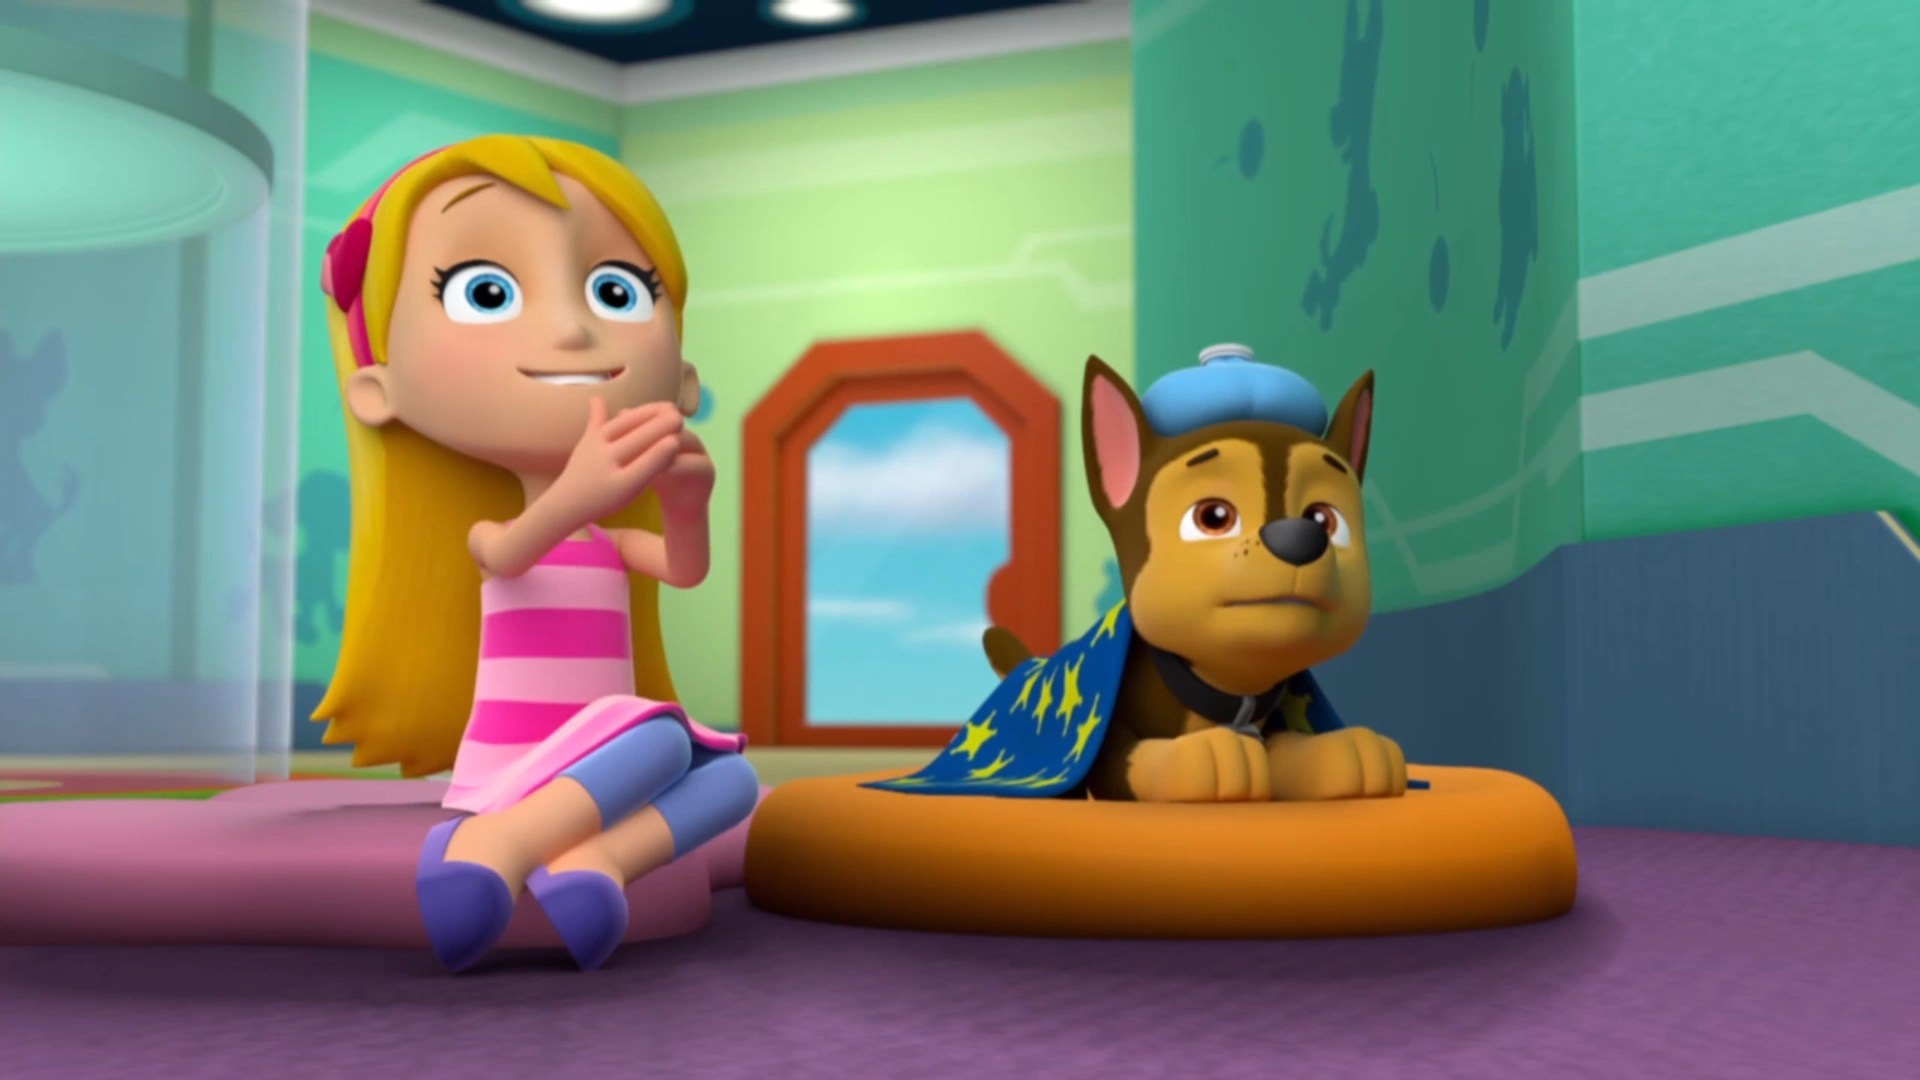 Girl Paw Patrol Wallpaper Pups Save A Show Quotes Paw Patrol Wiki Fandom Powered